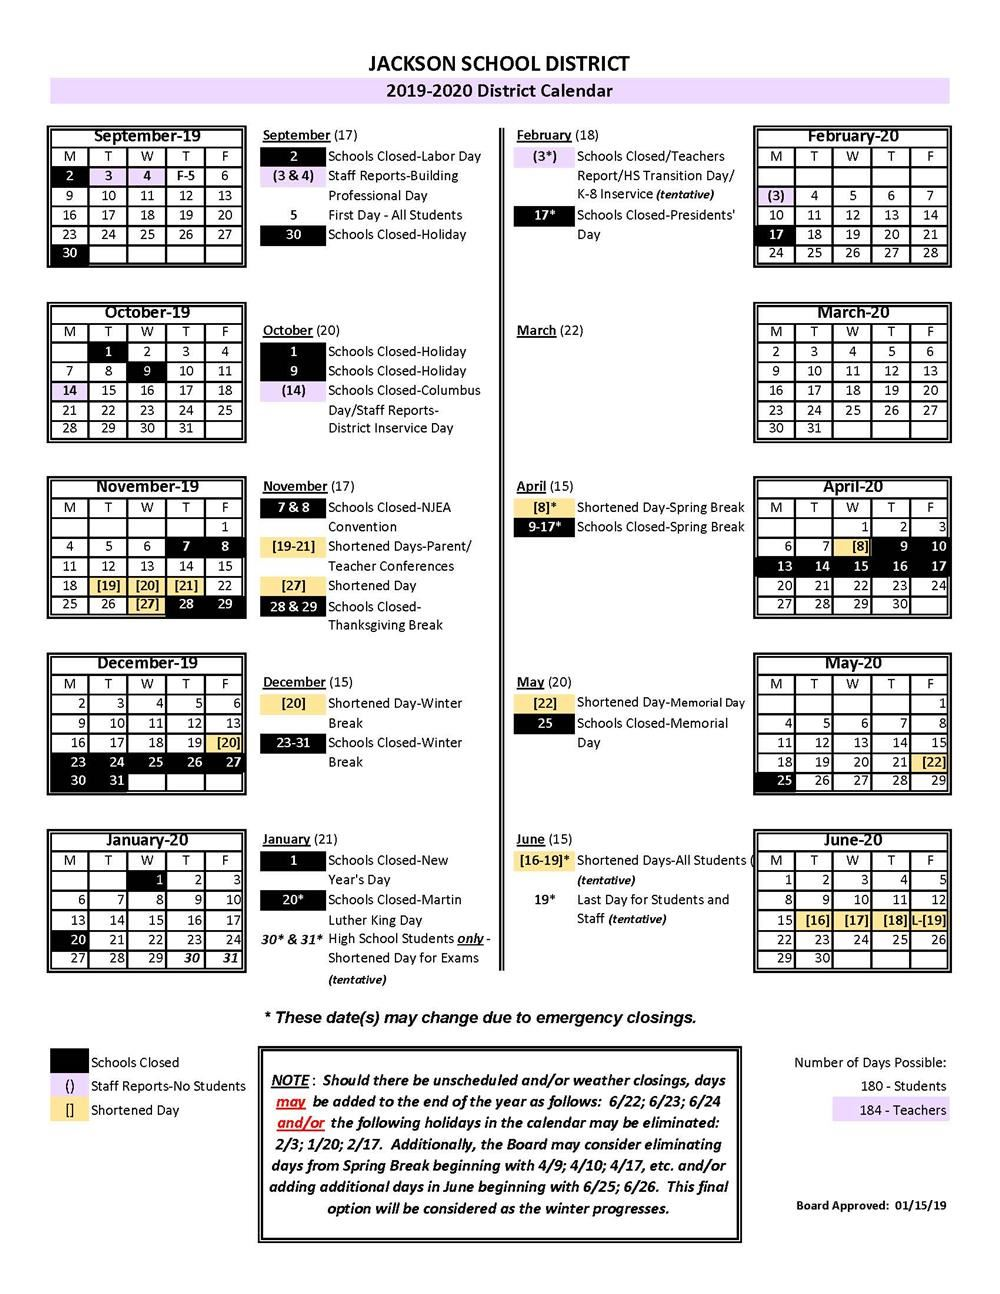 2019-2020 District Calendar is Approved